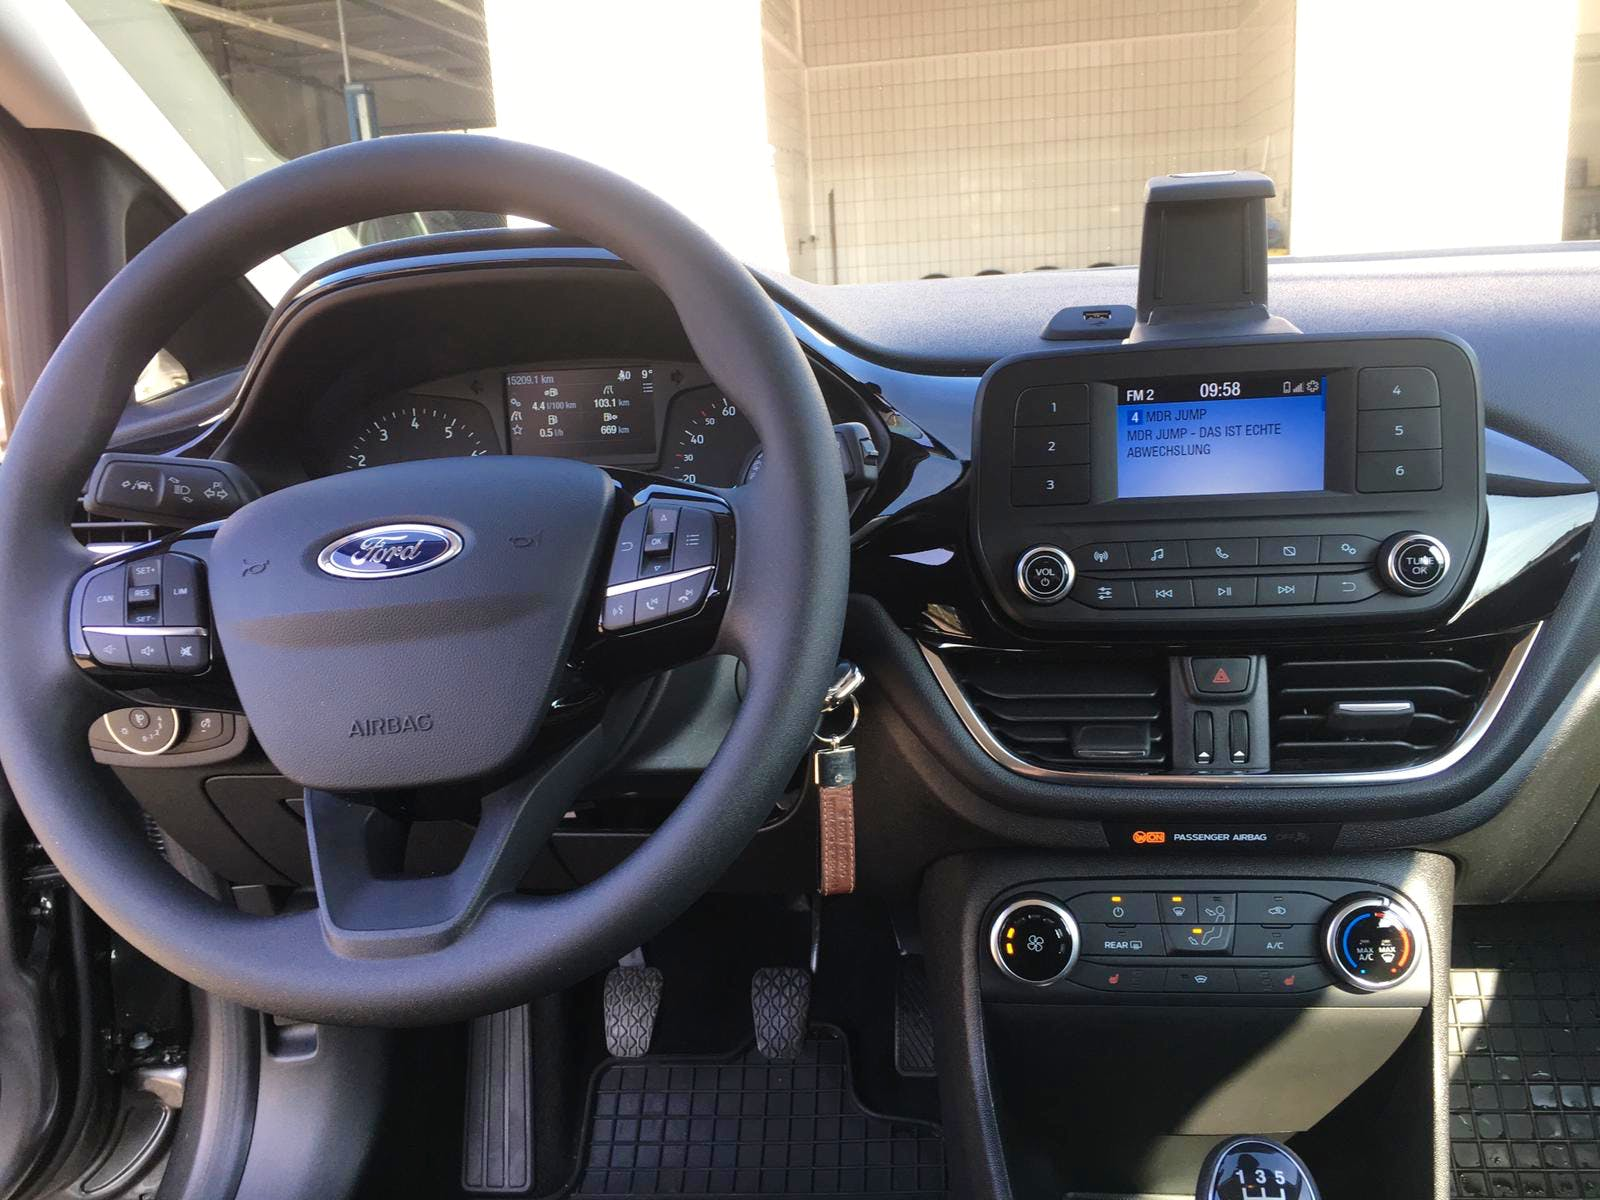 Ford Fiesta 1.1 Cool&Connect mit Audio-/iPod-Zugang